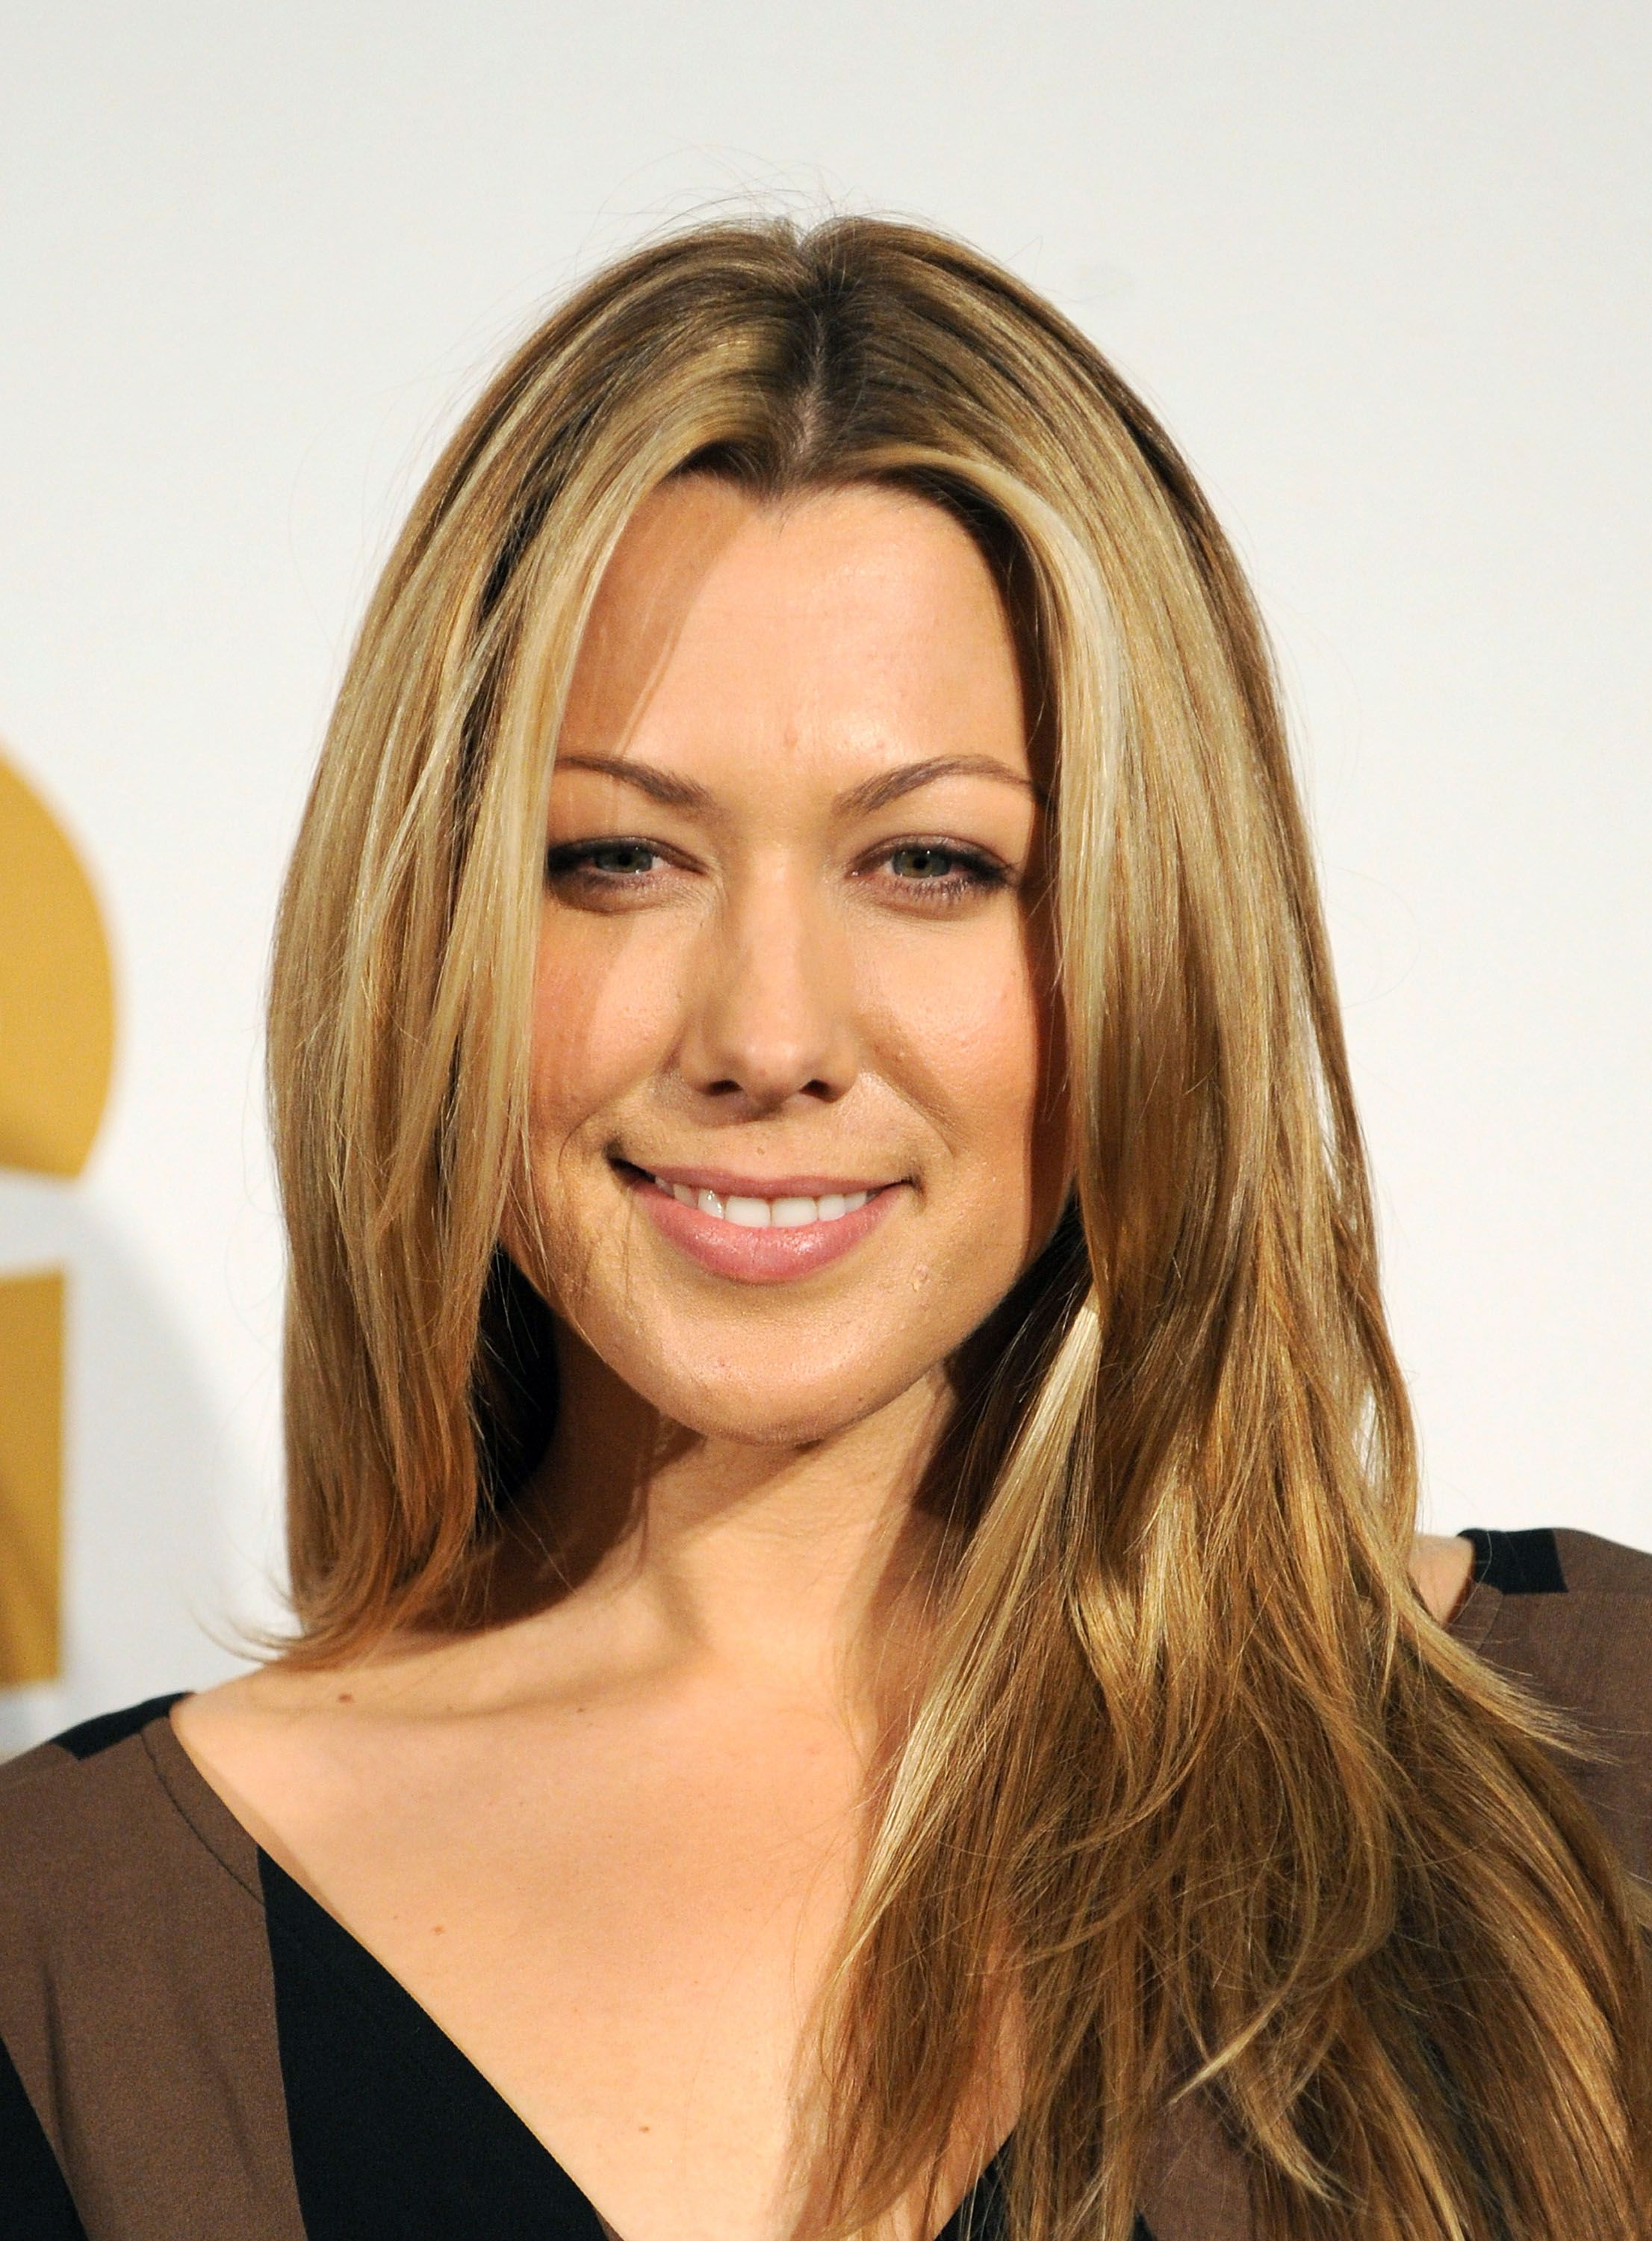 Colbie caillat ethnicity